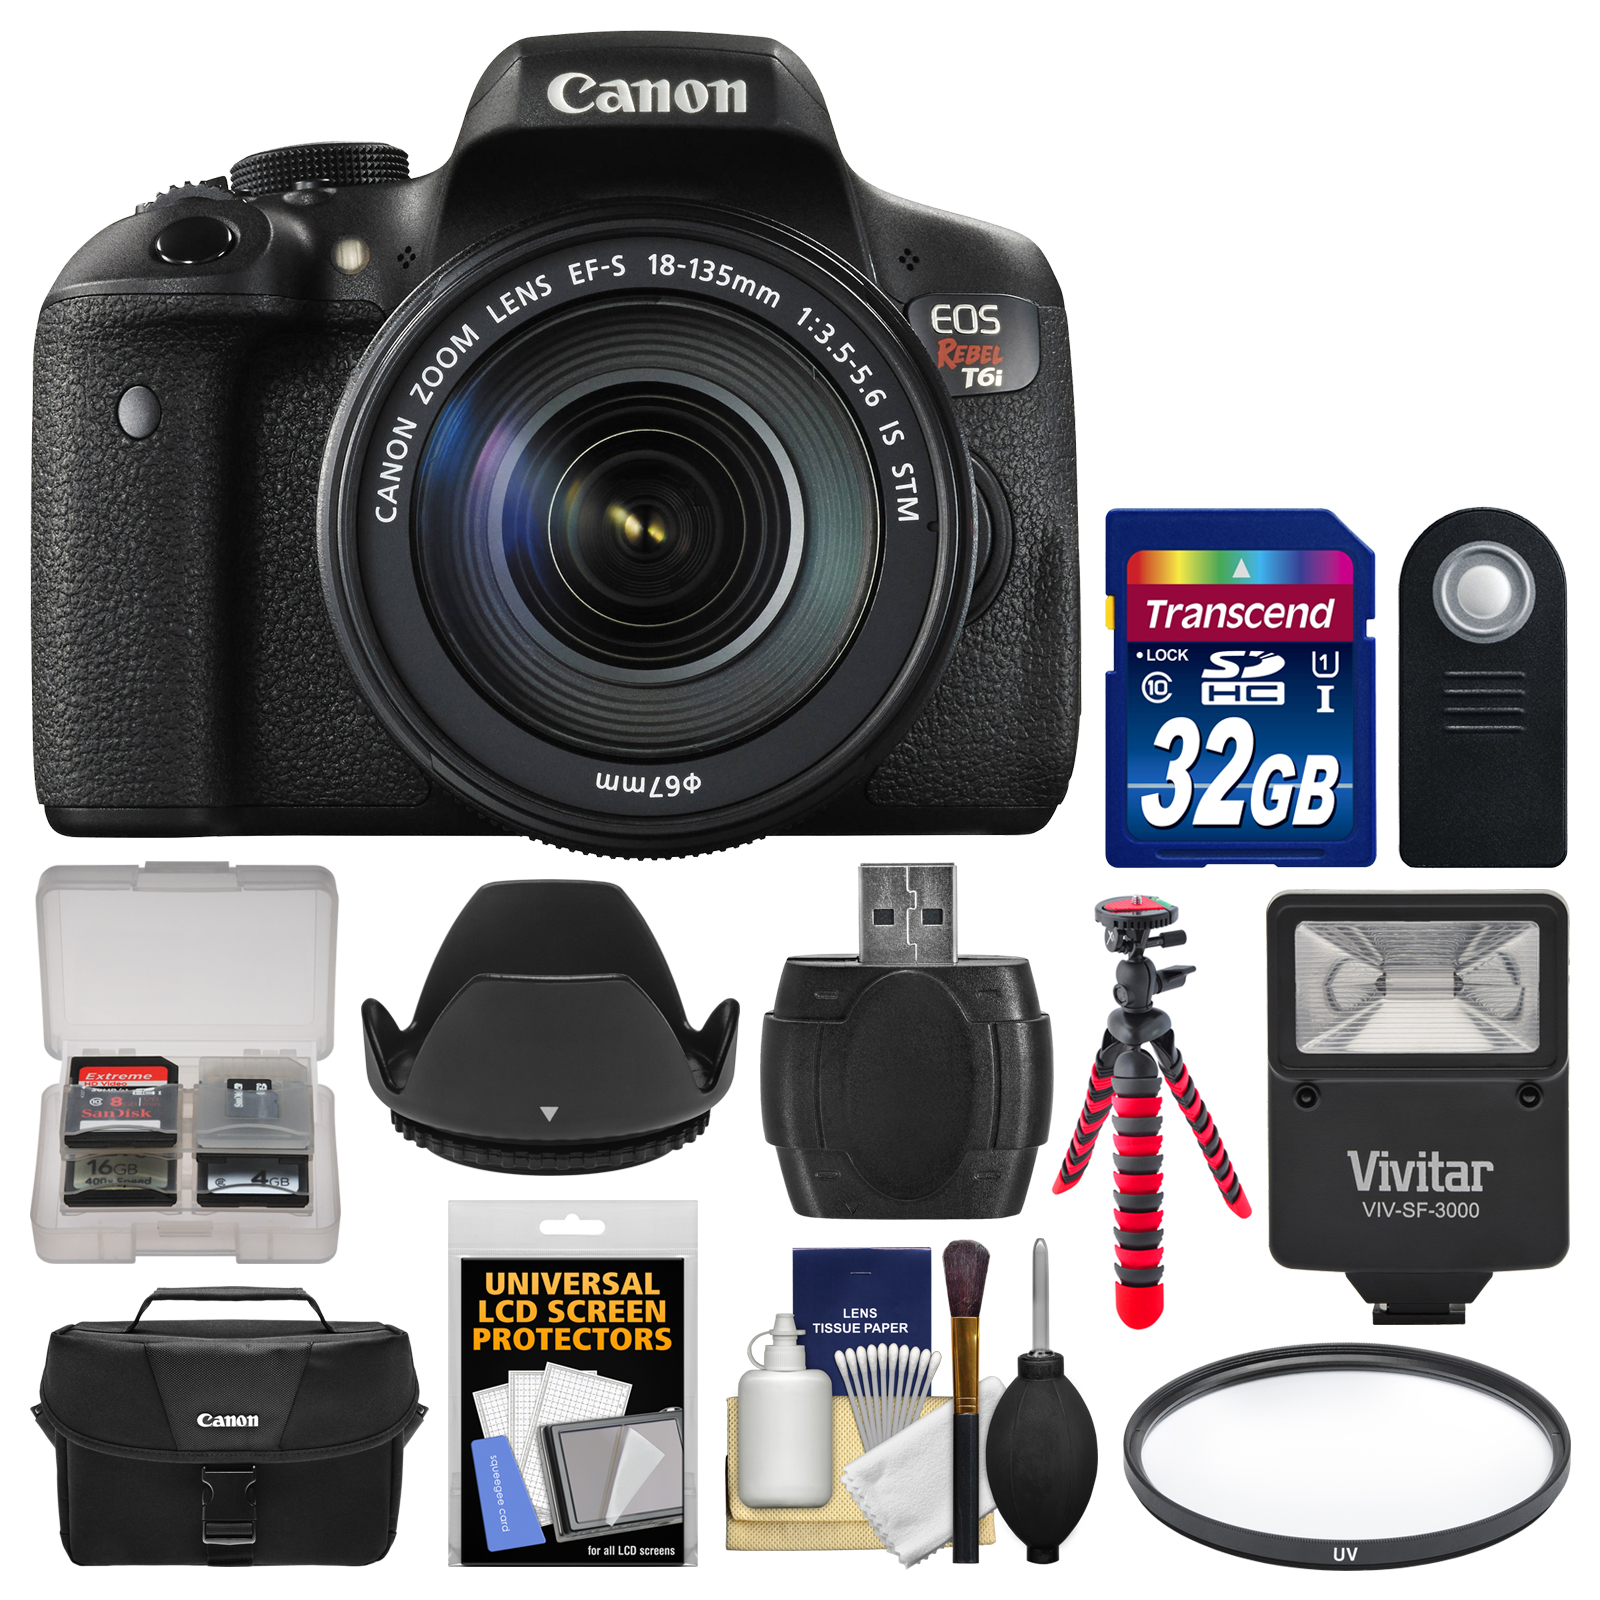 Canon EOS Rebel T6i Wi-Fi Digital SLR Camera & EF-S 18-135mm IS STM Lens with 32GB Card + Case + Flash +... by Canon